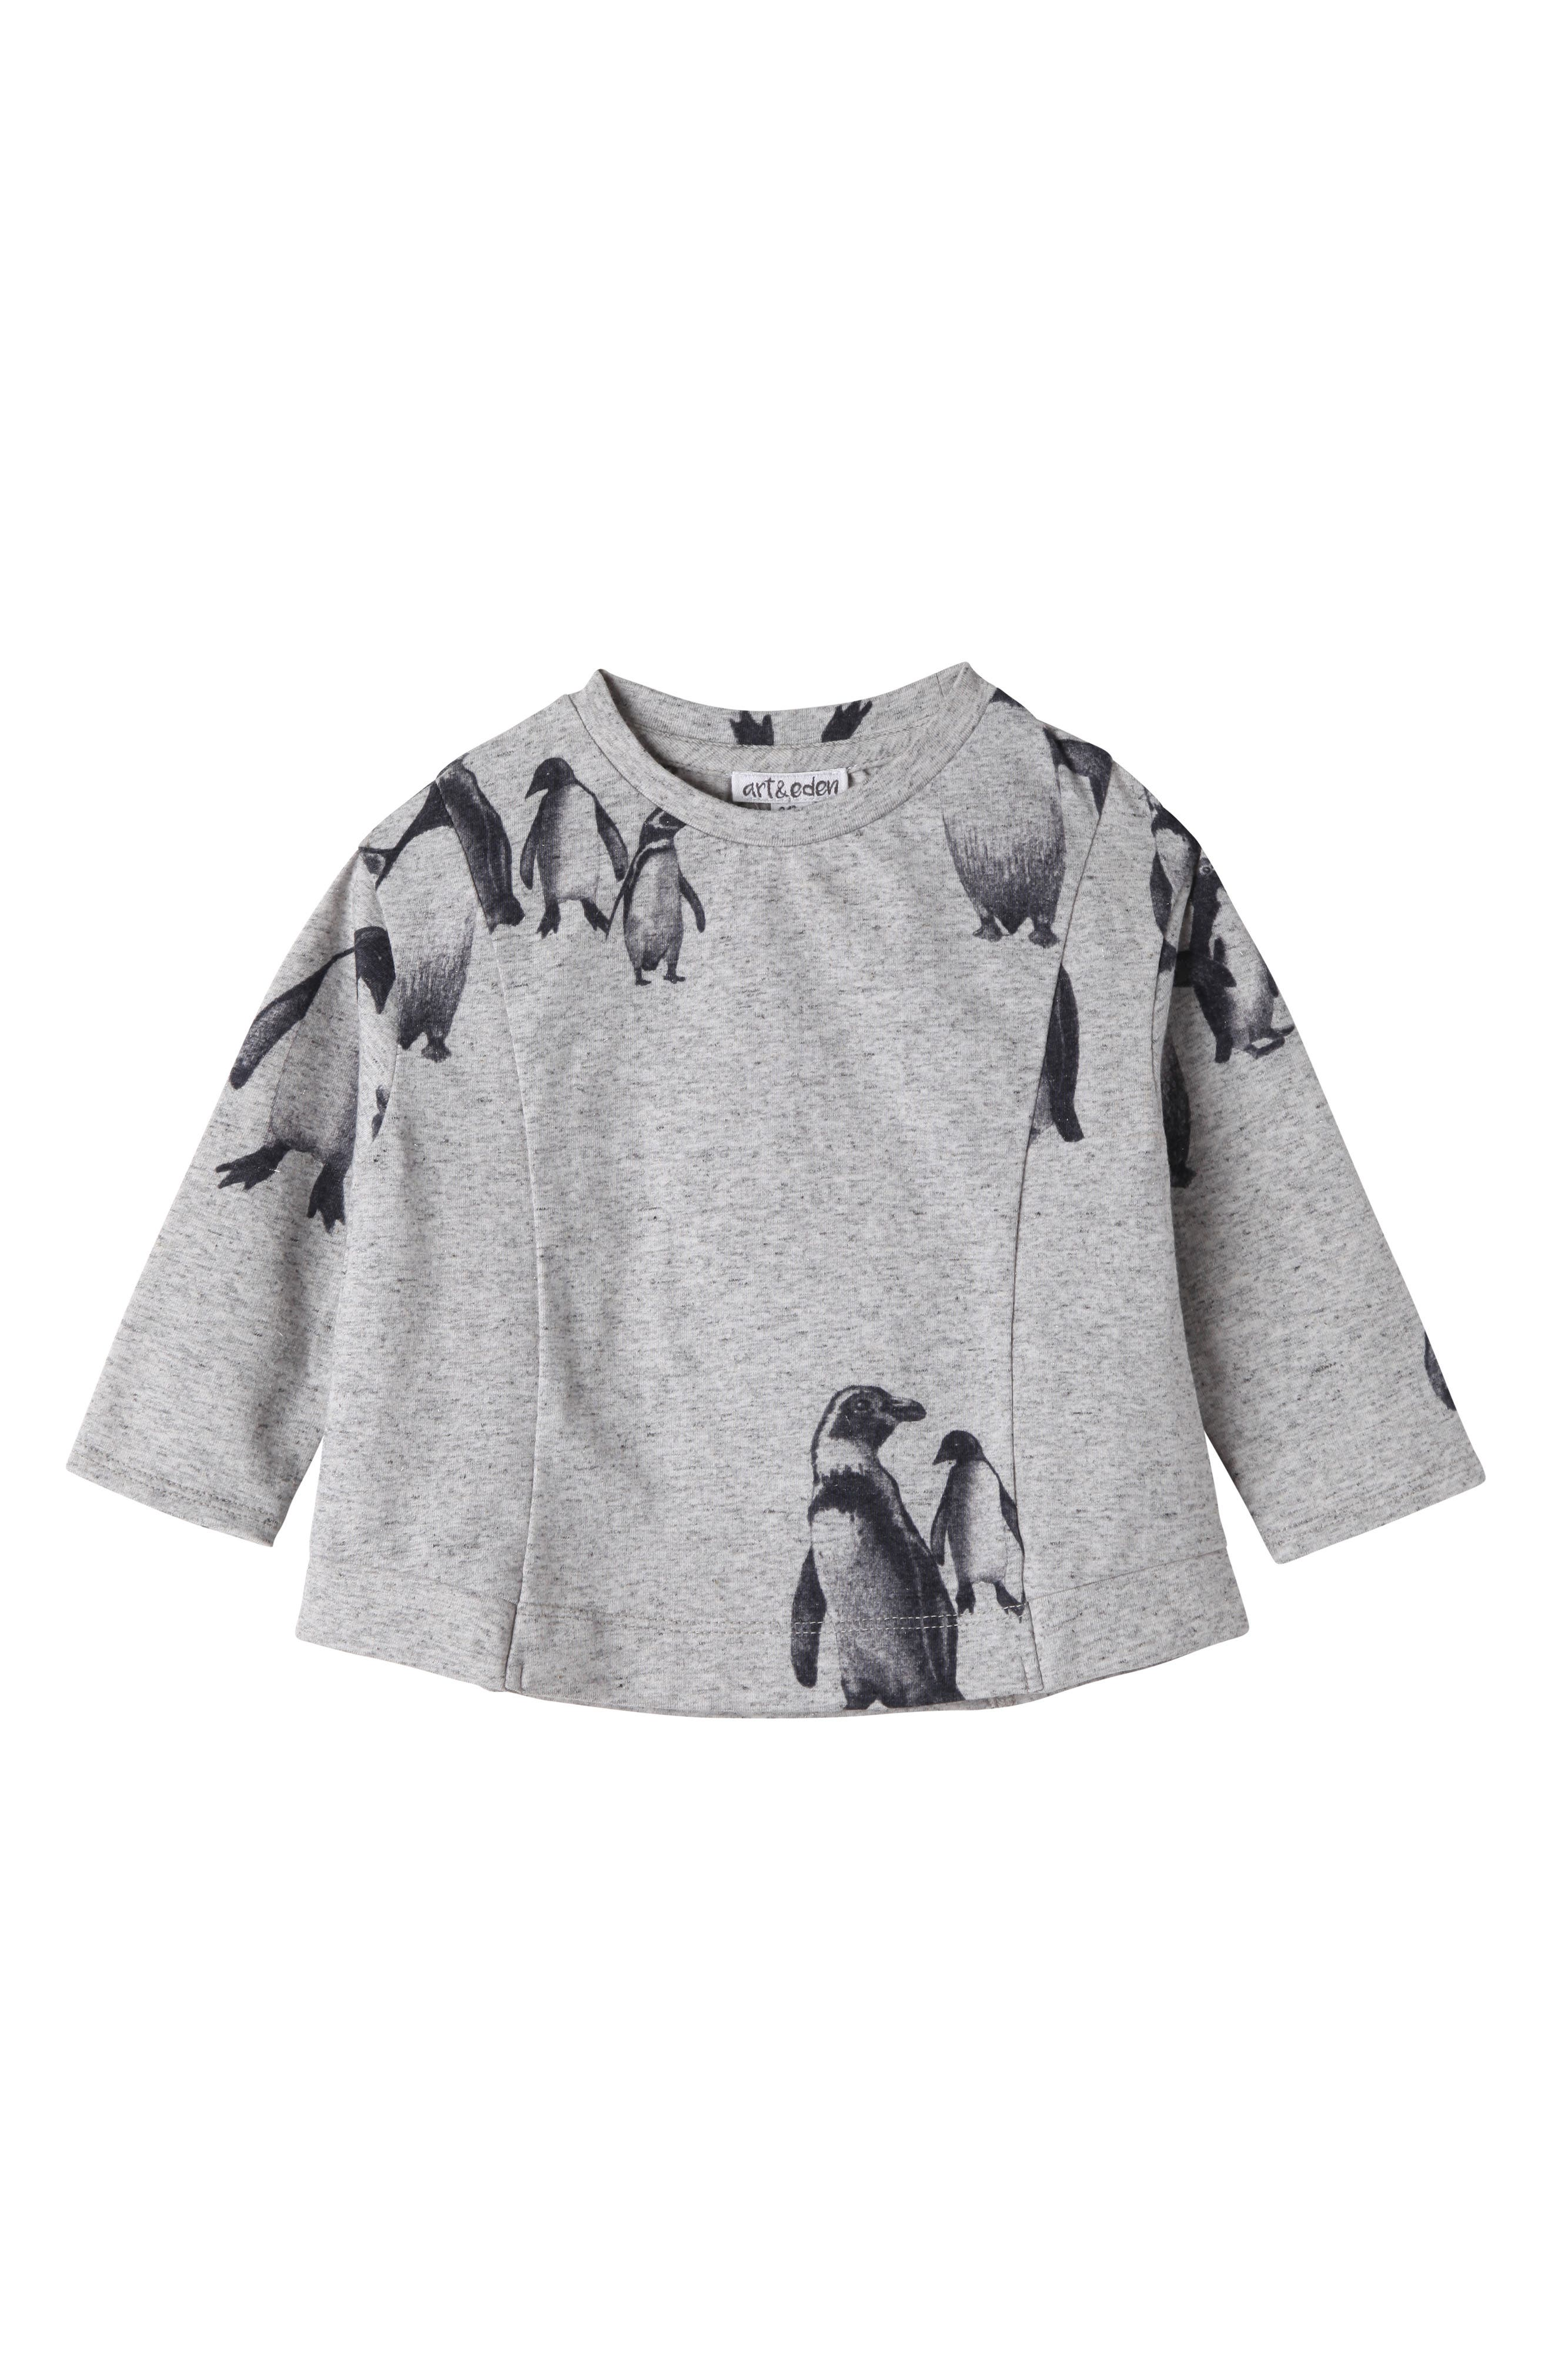 Penguin Graphic Tee,                             Main thumbnail 1, color,                             033